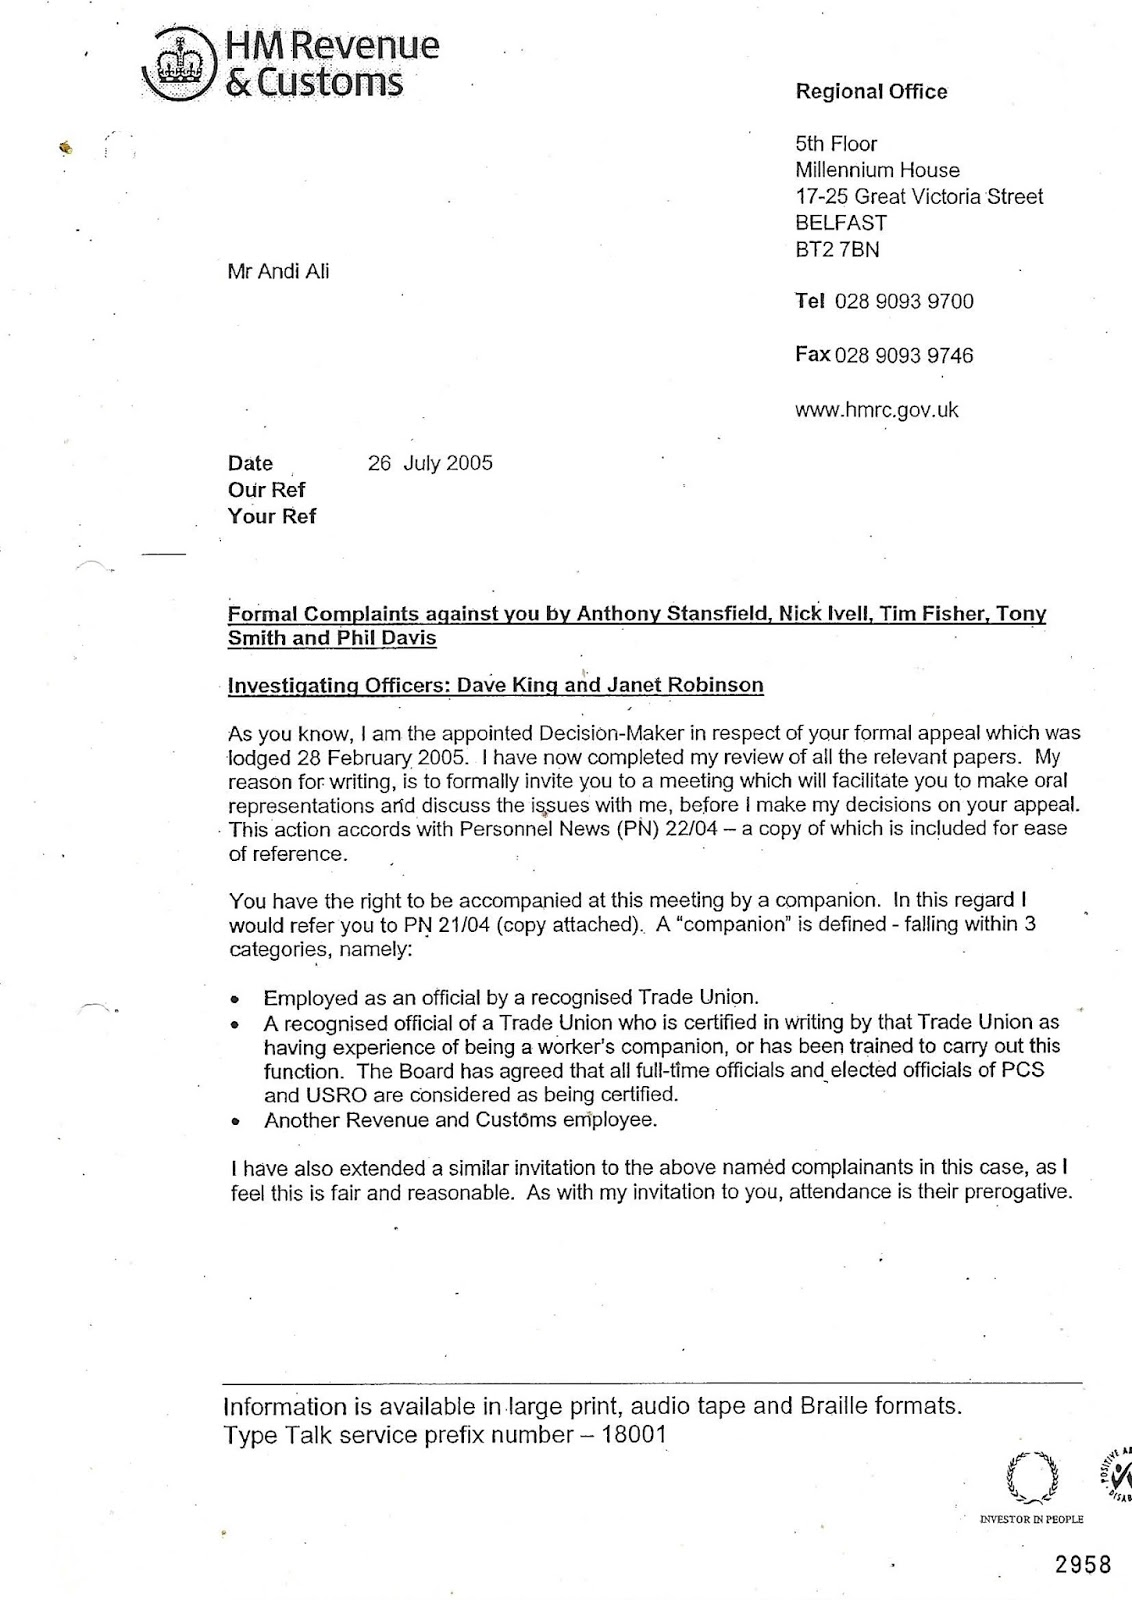 sample letter to hmrc for penalty appeal